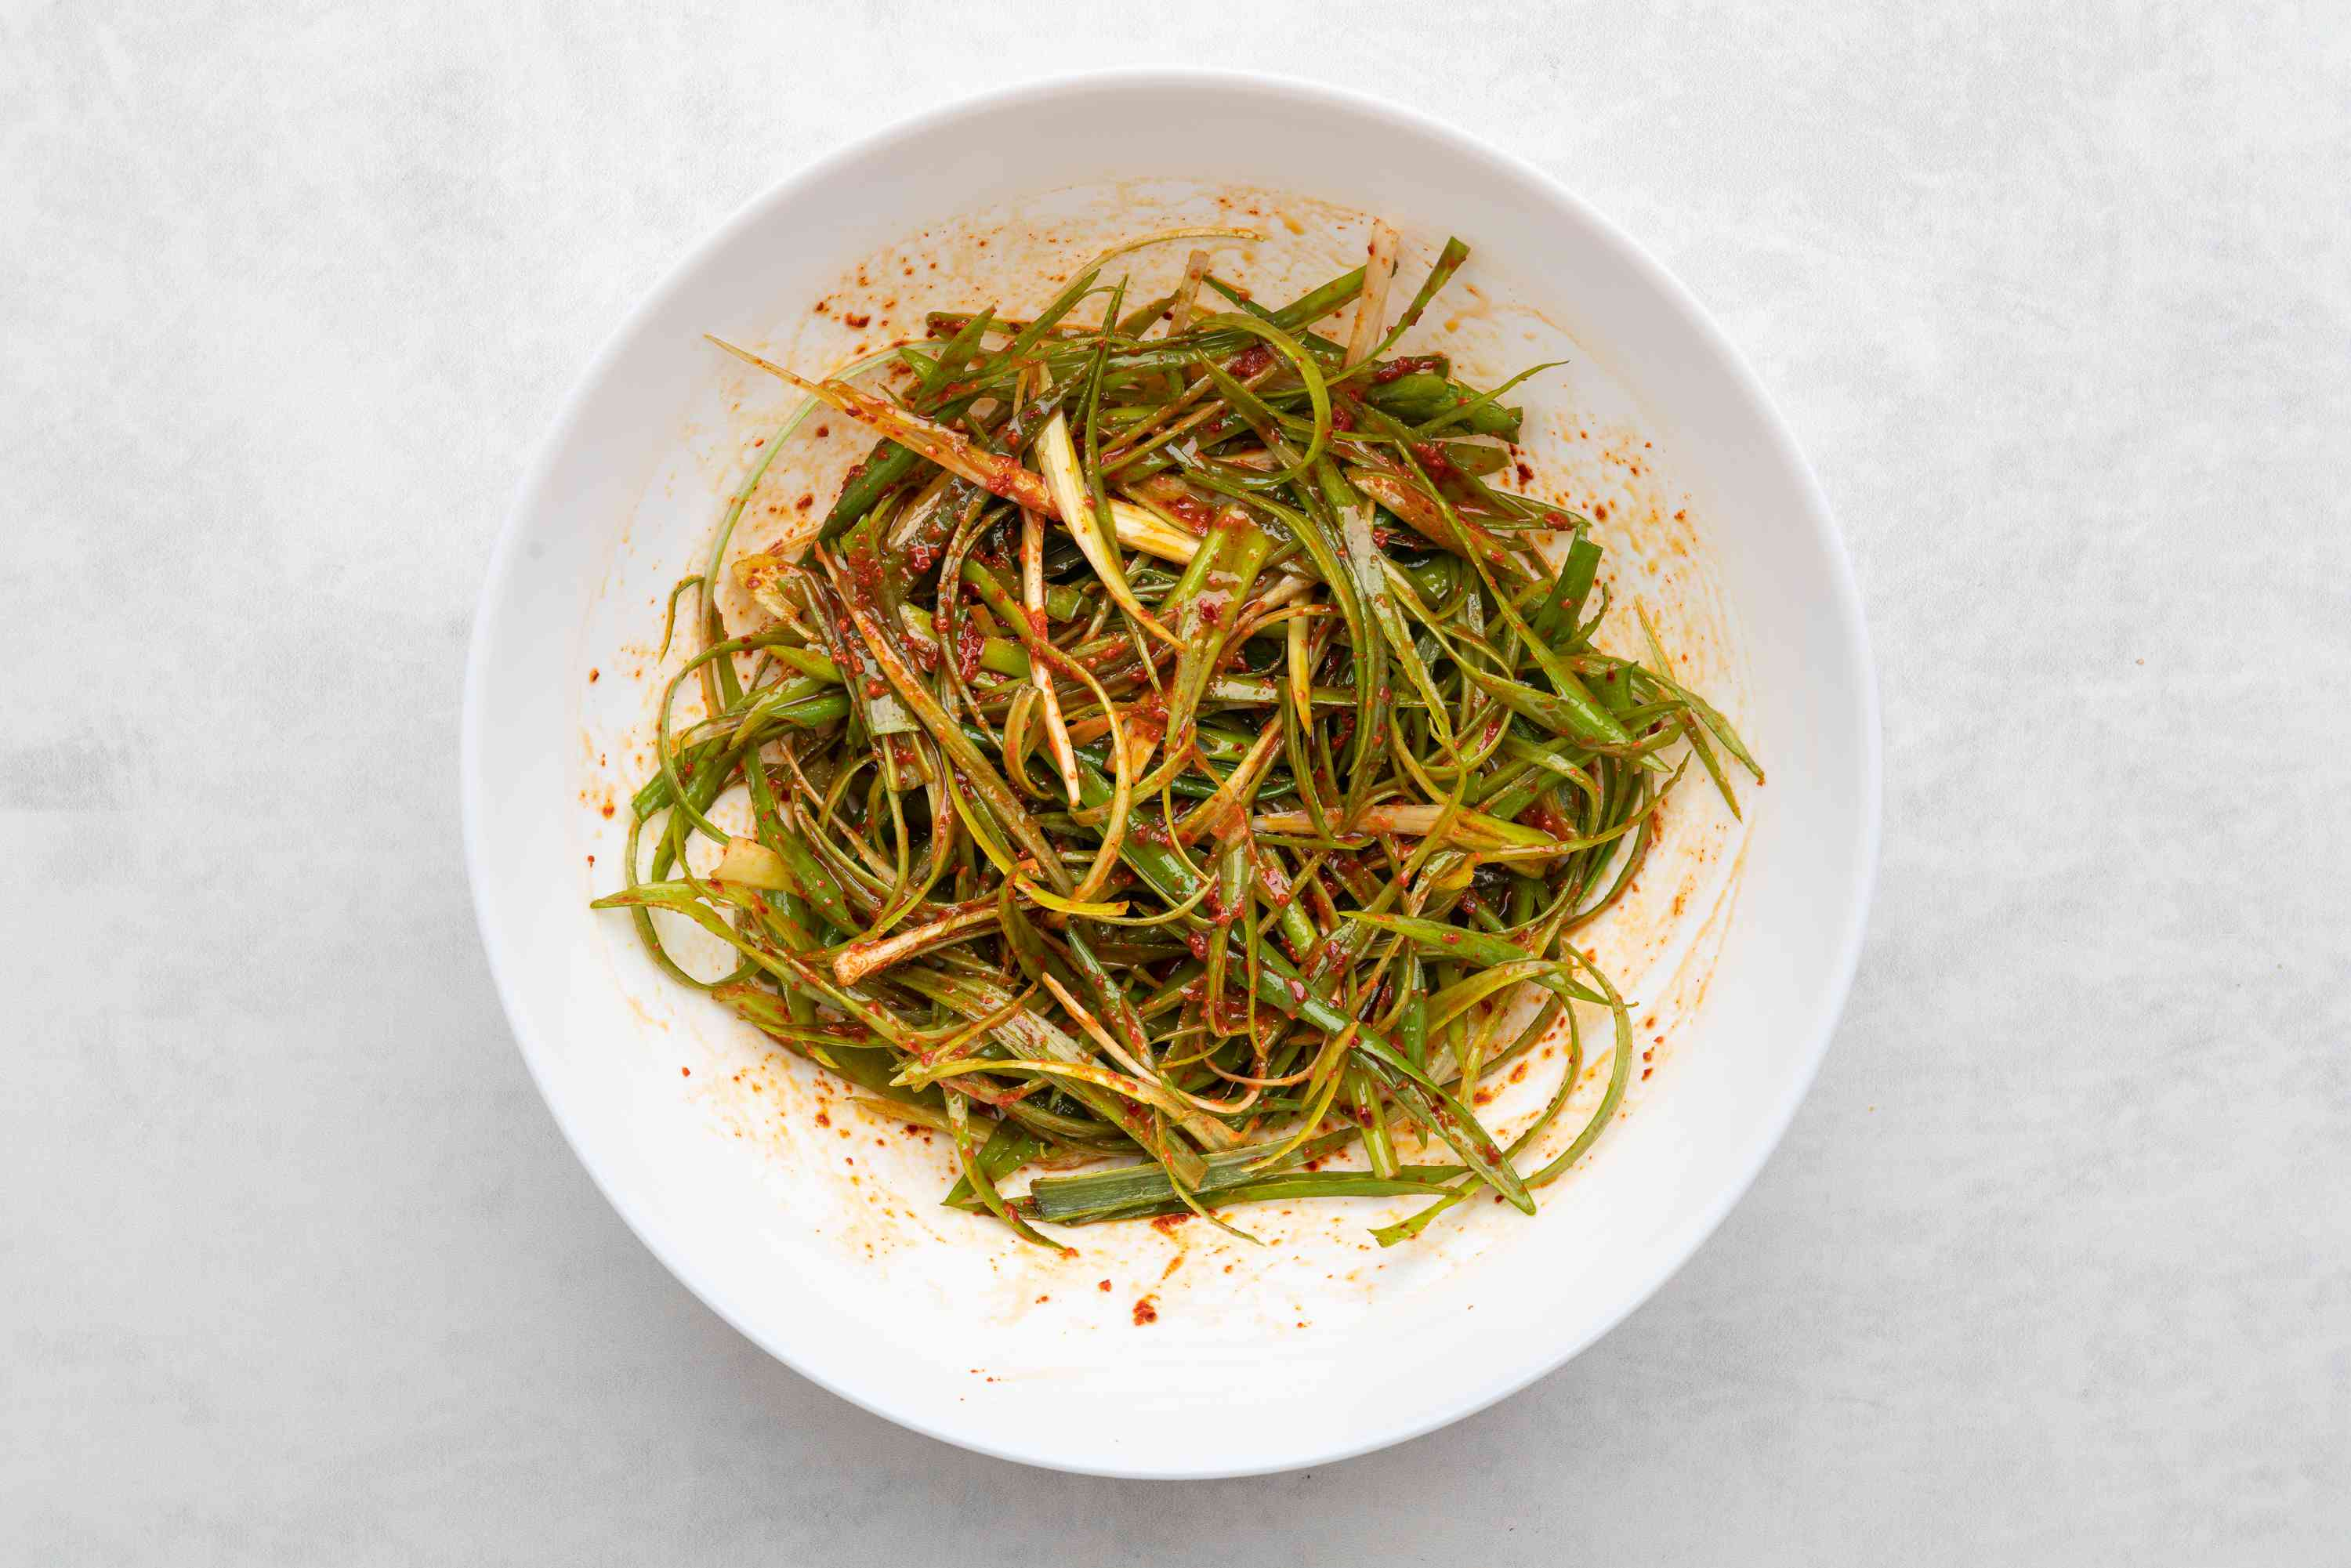 scallion salad in a bowl